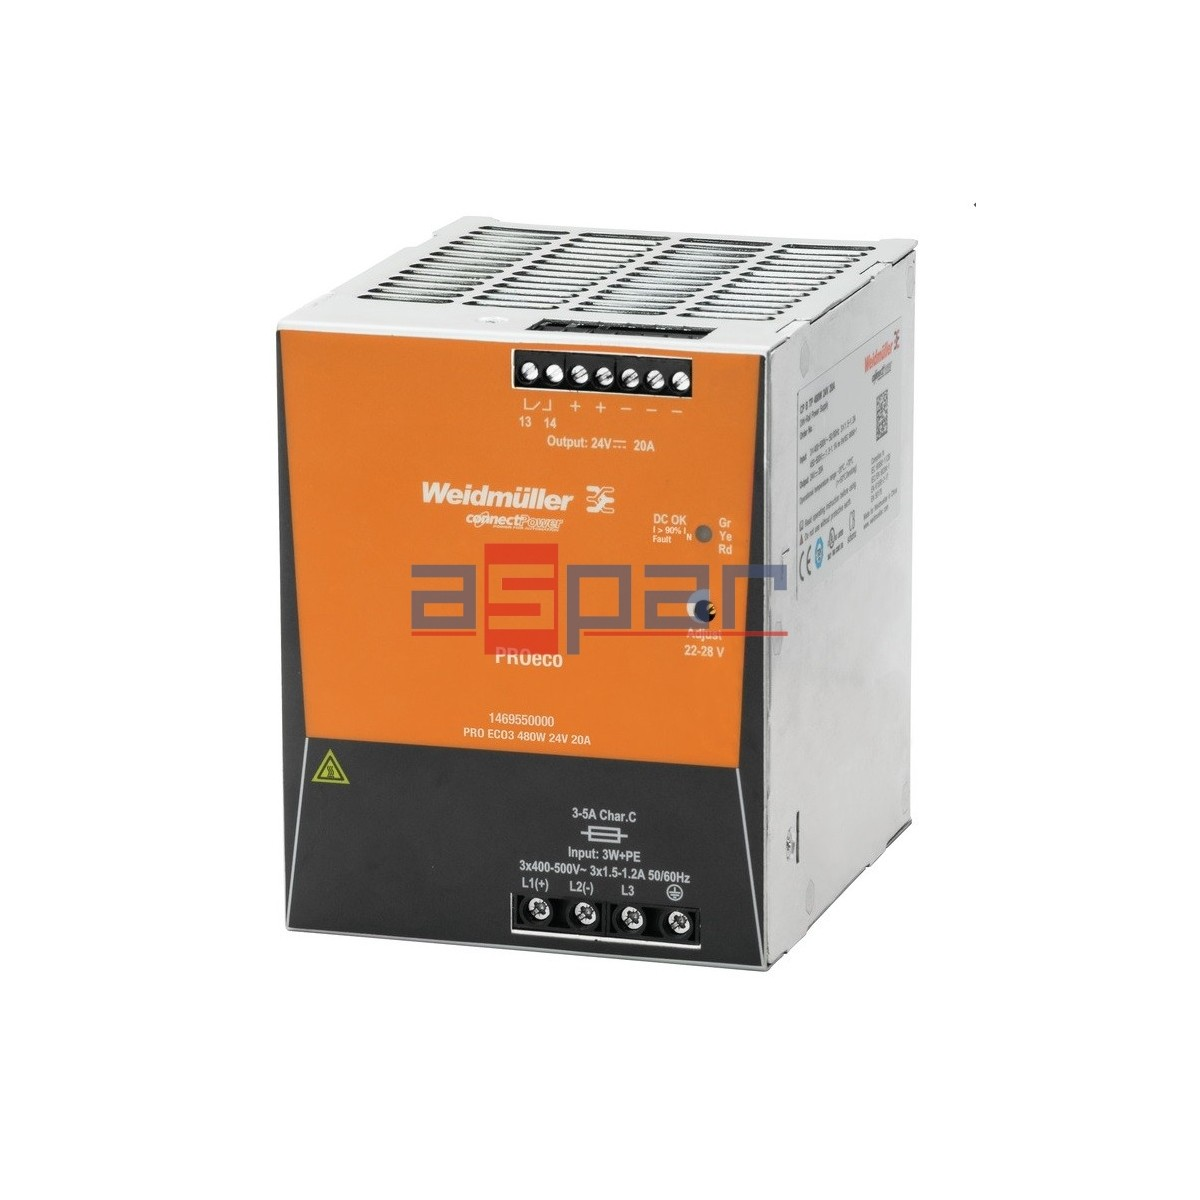 switch-mode power supply unit, 24 V, PROeco 480W 24VDC 20A